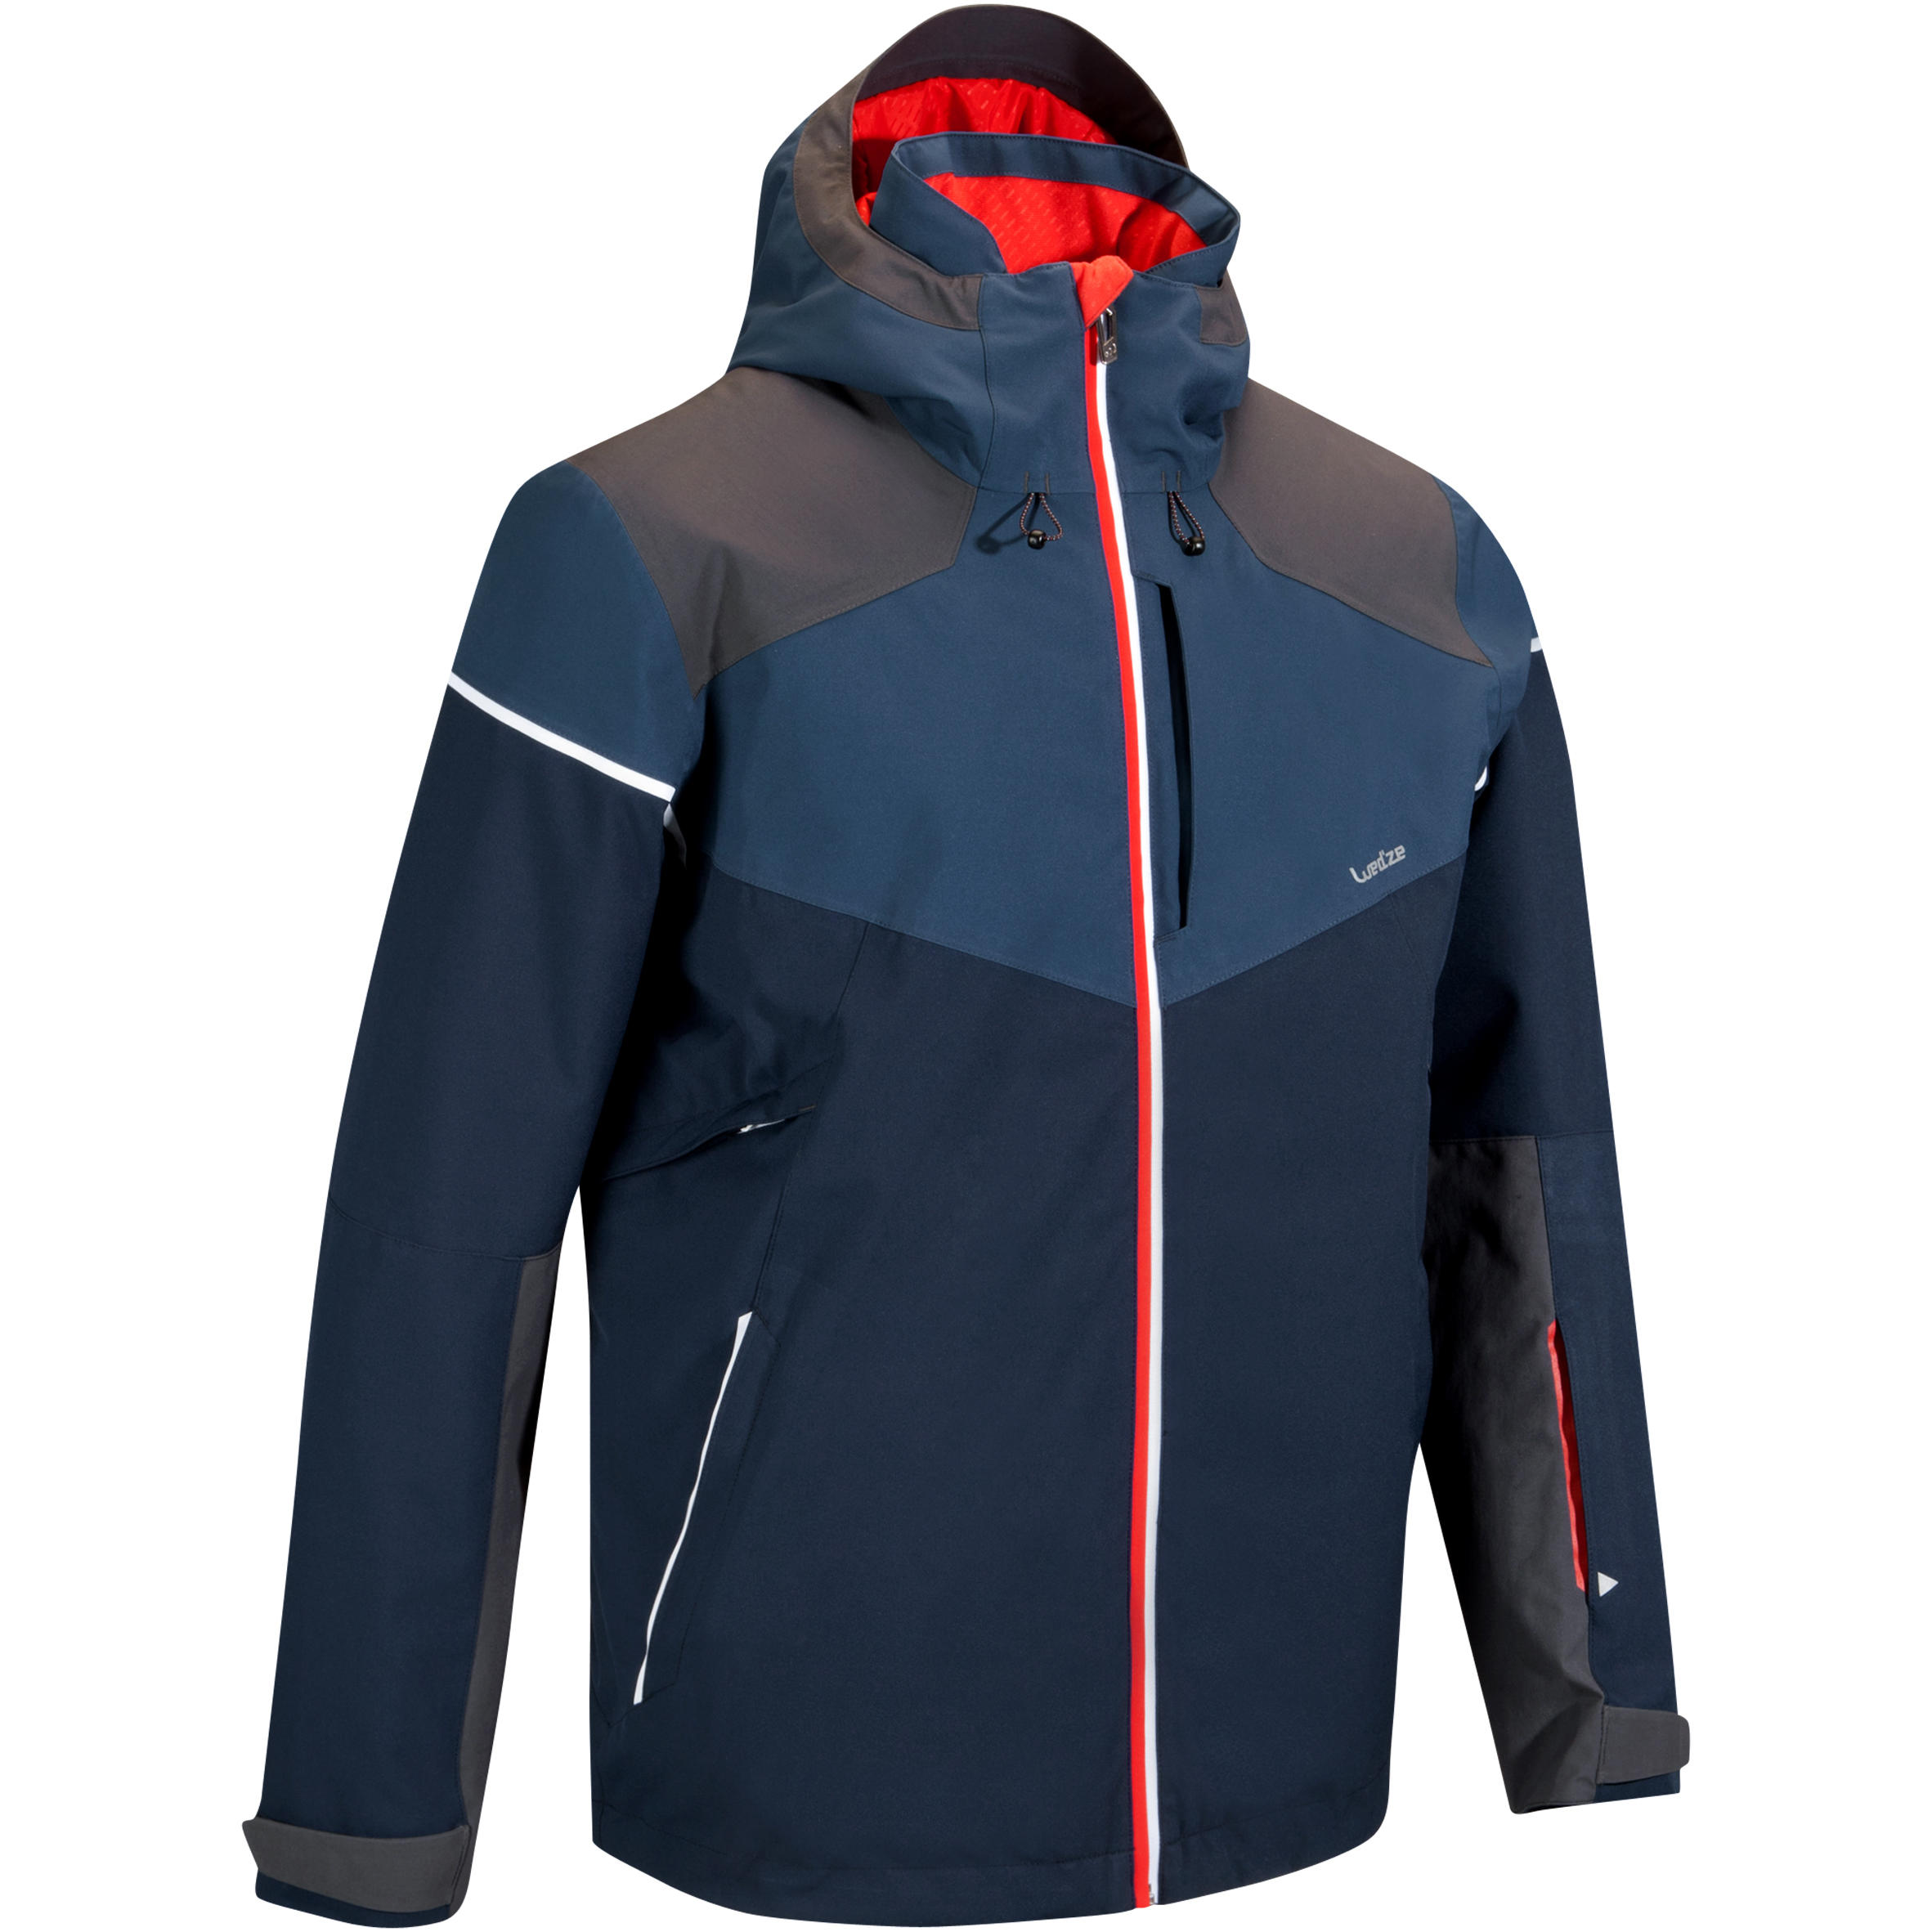 MEN'S DOWNHILL SKI JACKET 580, NAVY